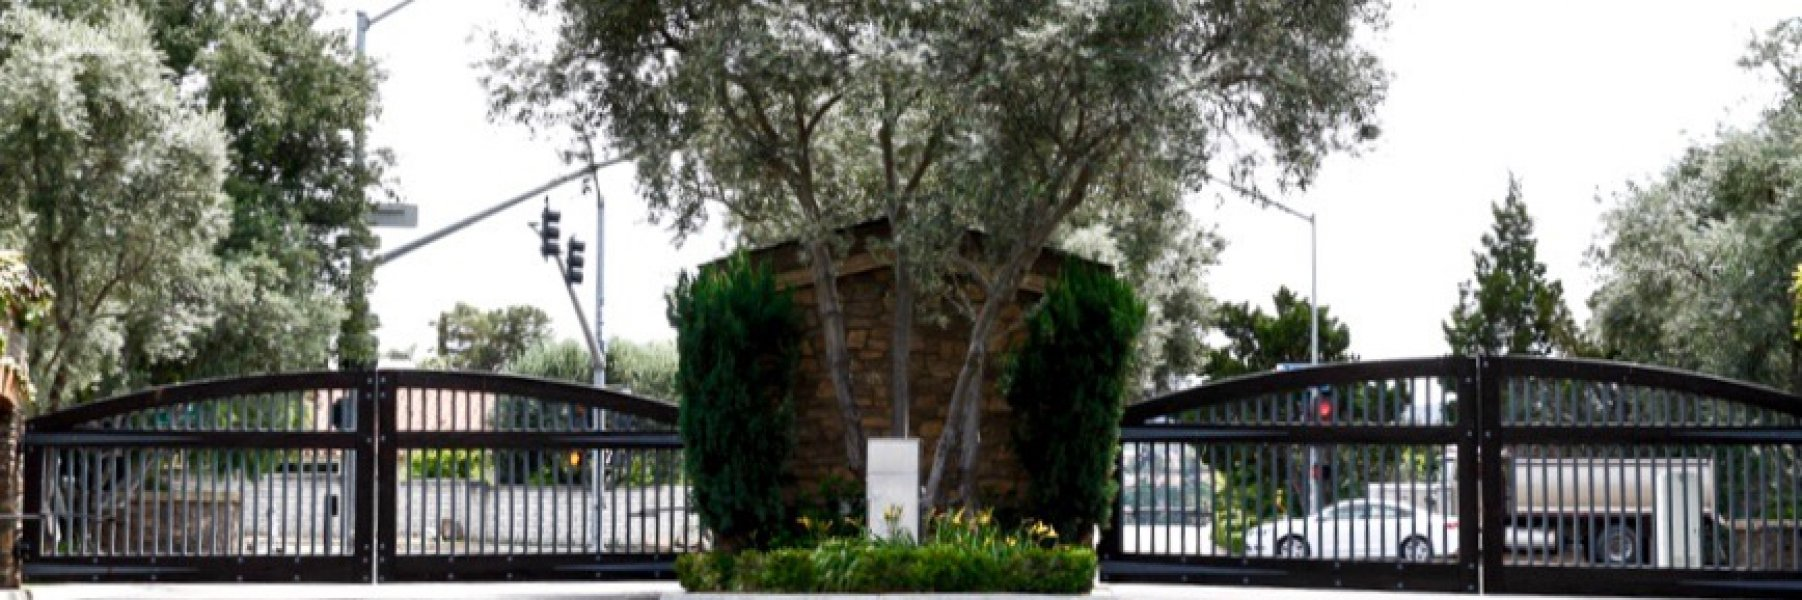 Vezelay is a community of homes in Rancho Bernardo California